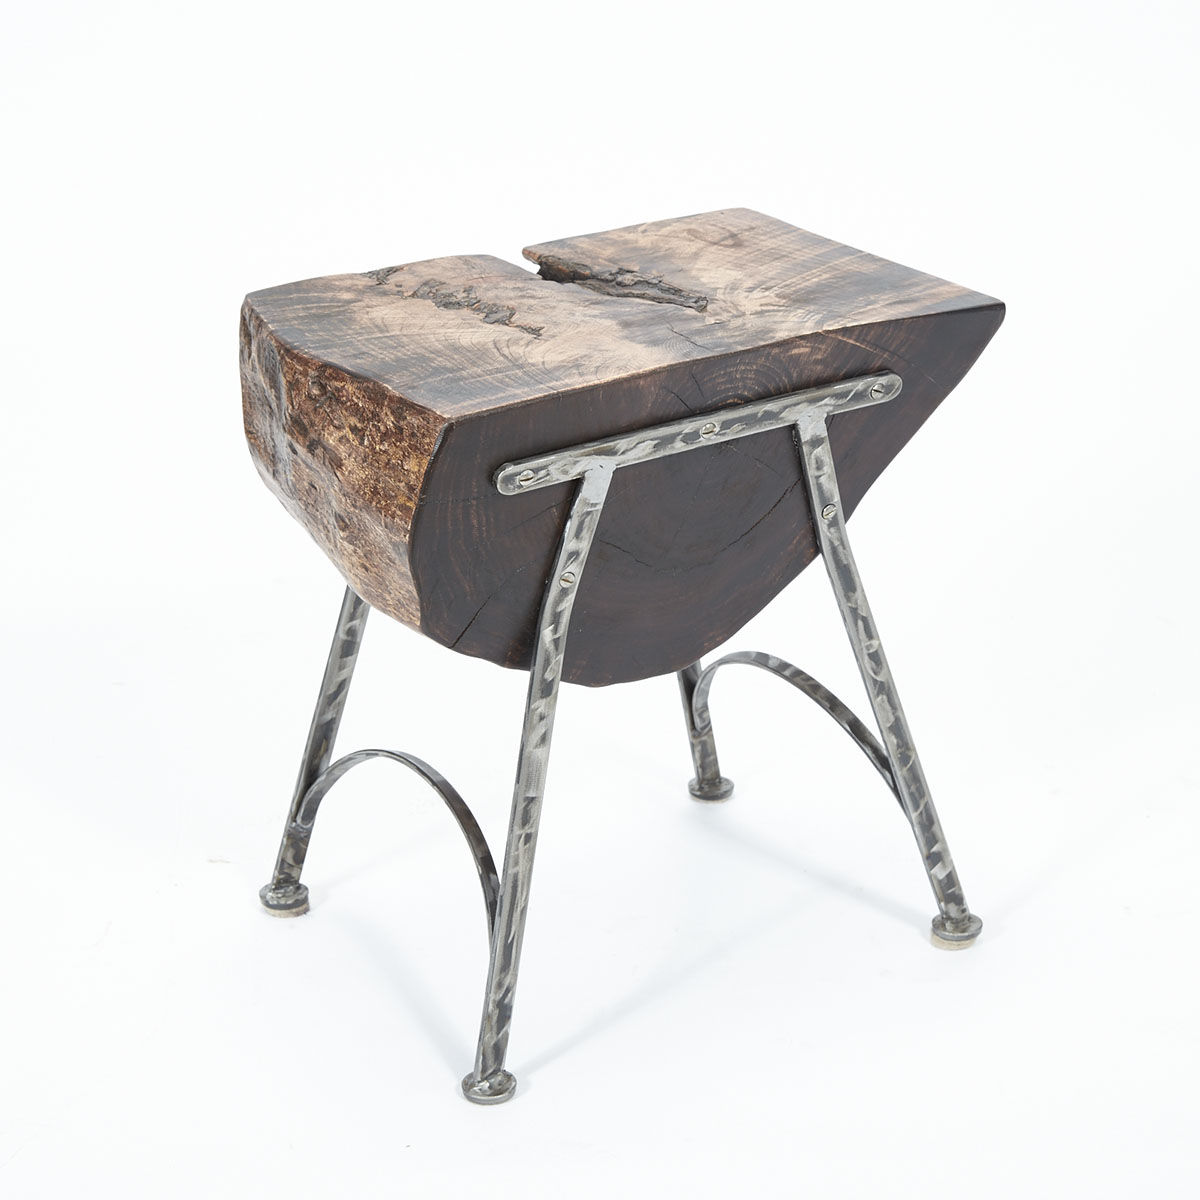 Contemporary Cherry Free Edge Log Table/ Stool on Wrought Iron Stand